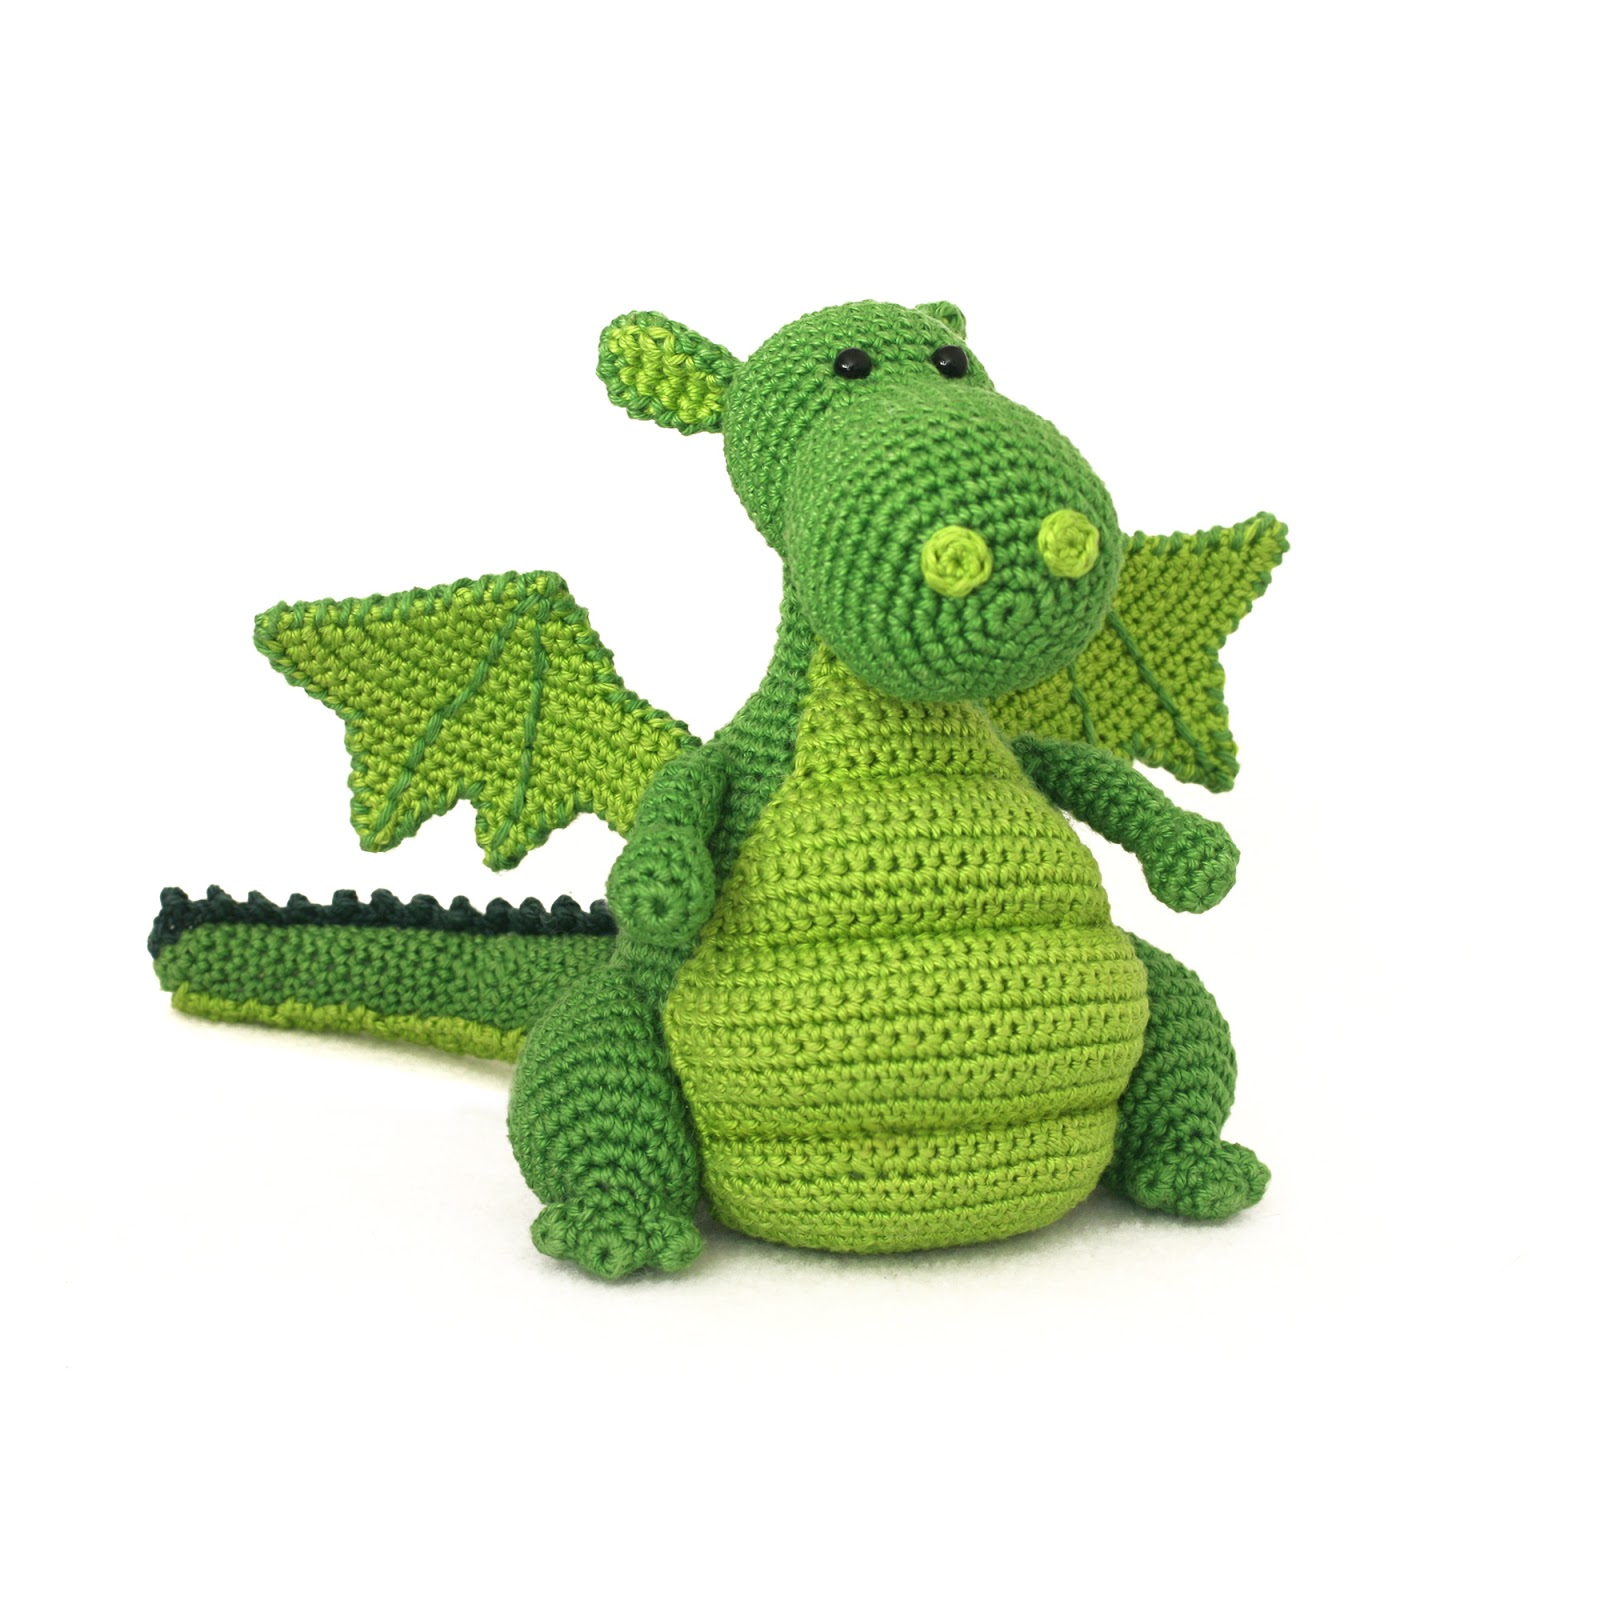 Large Amigurumi Pattern Free : Toy Patterns by DIY Fluffies : Dragon Amigurumi Pattern